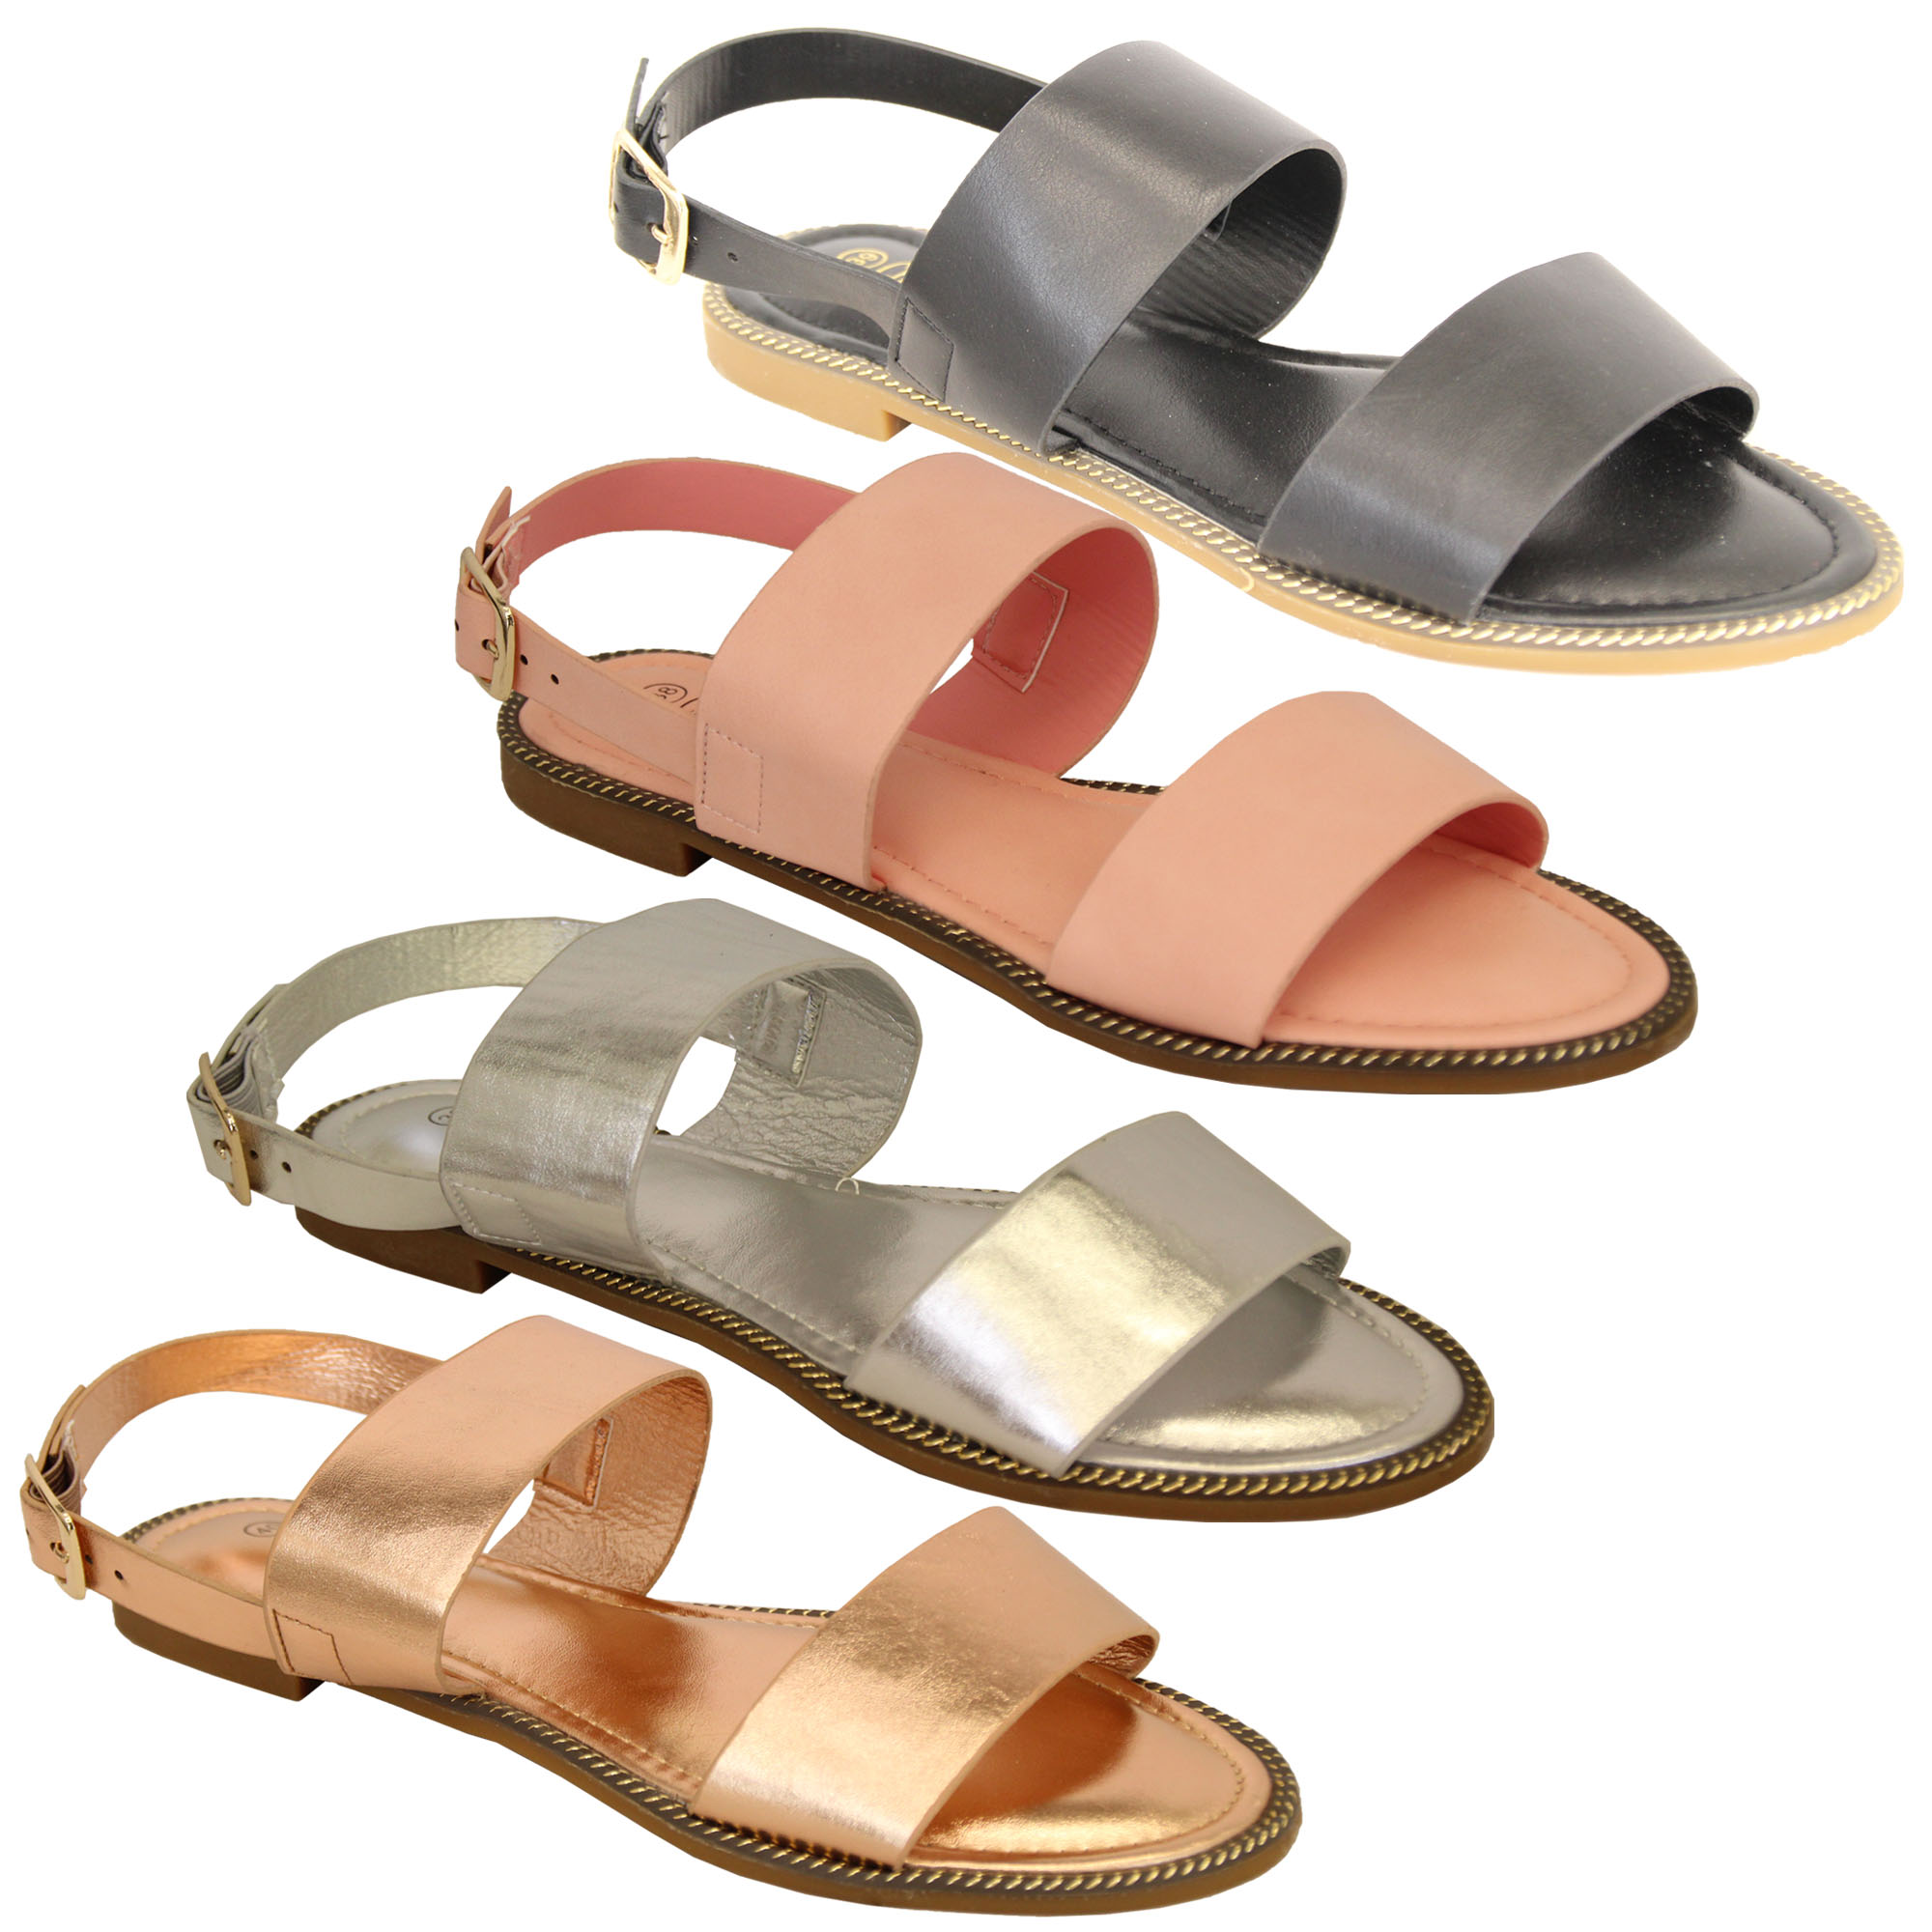 Ladies-Flat-Sandals-Slip-On-Womens-Open-Toe-Shoes-Buckle-Fashion-Wedding-Summer thumbnail 5